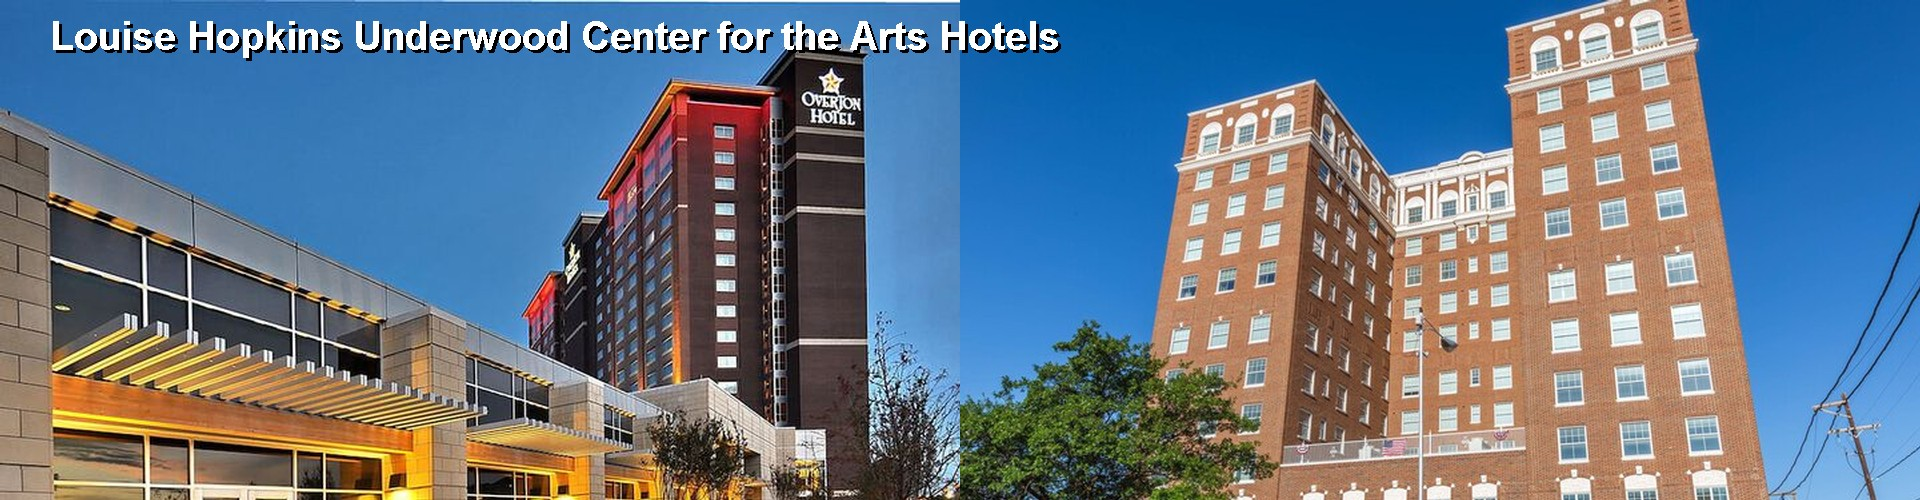 5 Best Hotels near Louise Hopkins Underwood Center for the Arts